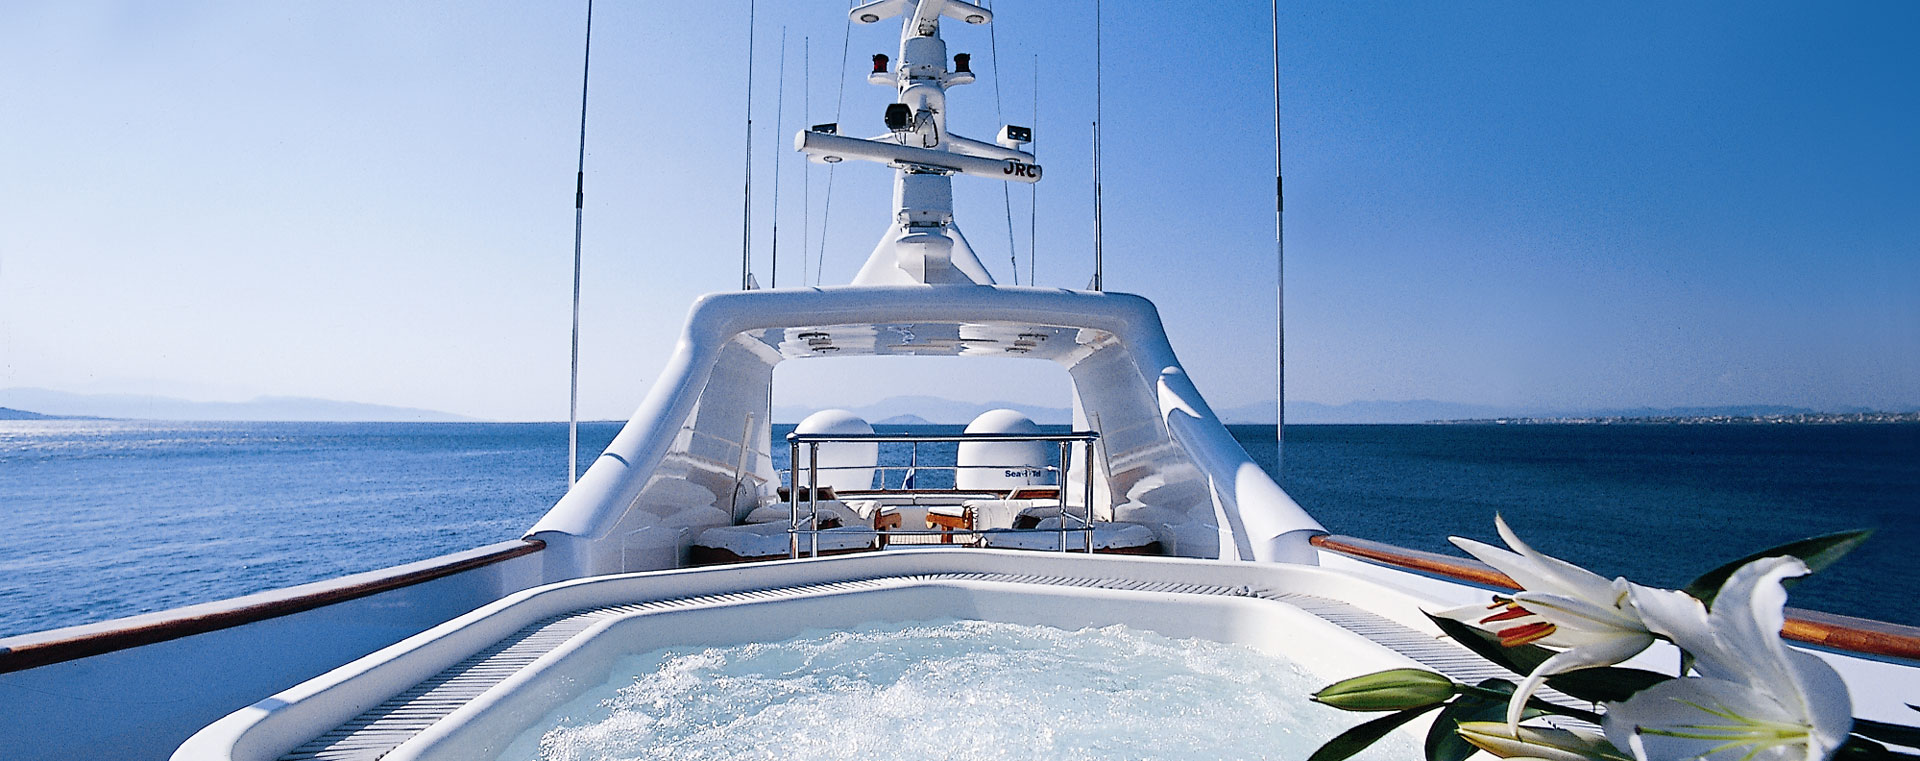 Motor Yacht Charter Prices